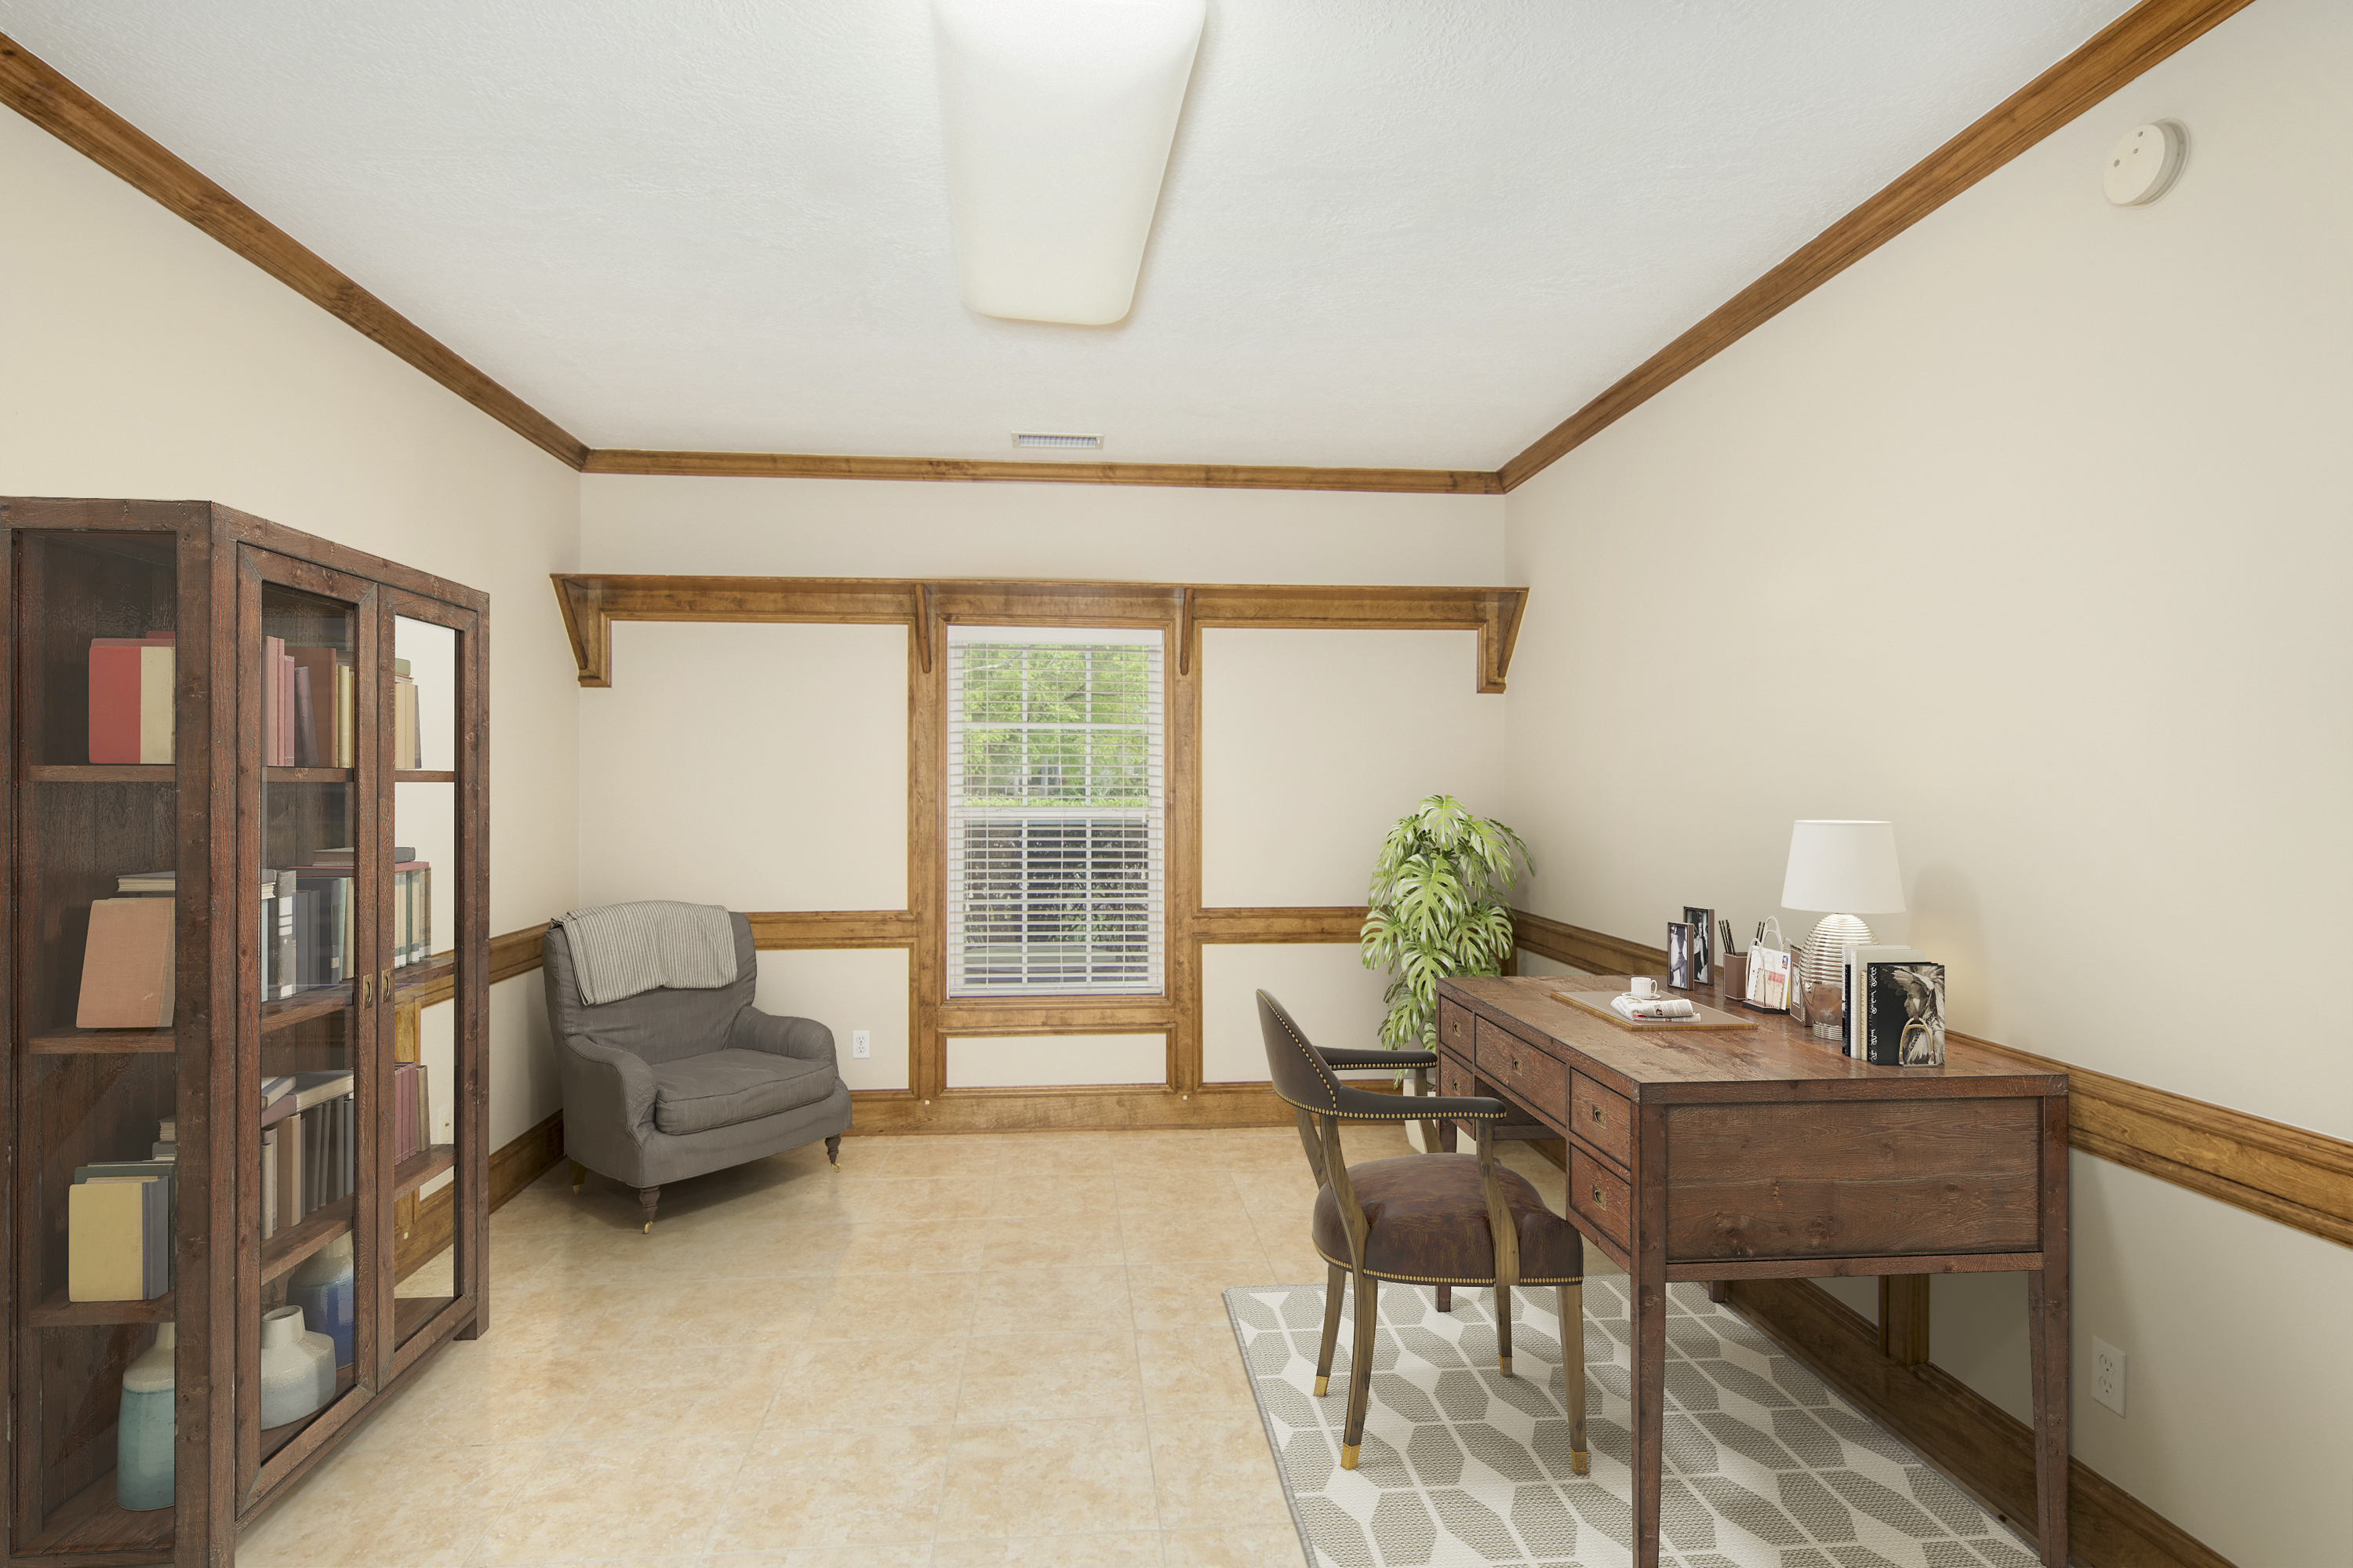 Denver, CO virtual staging photography